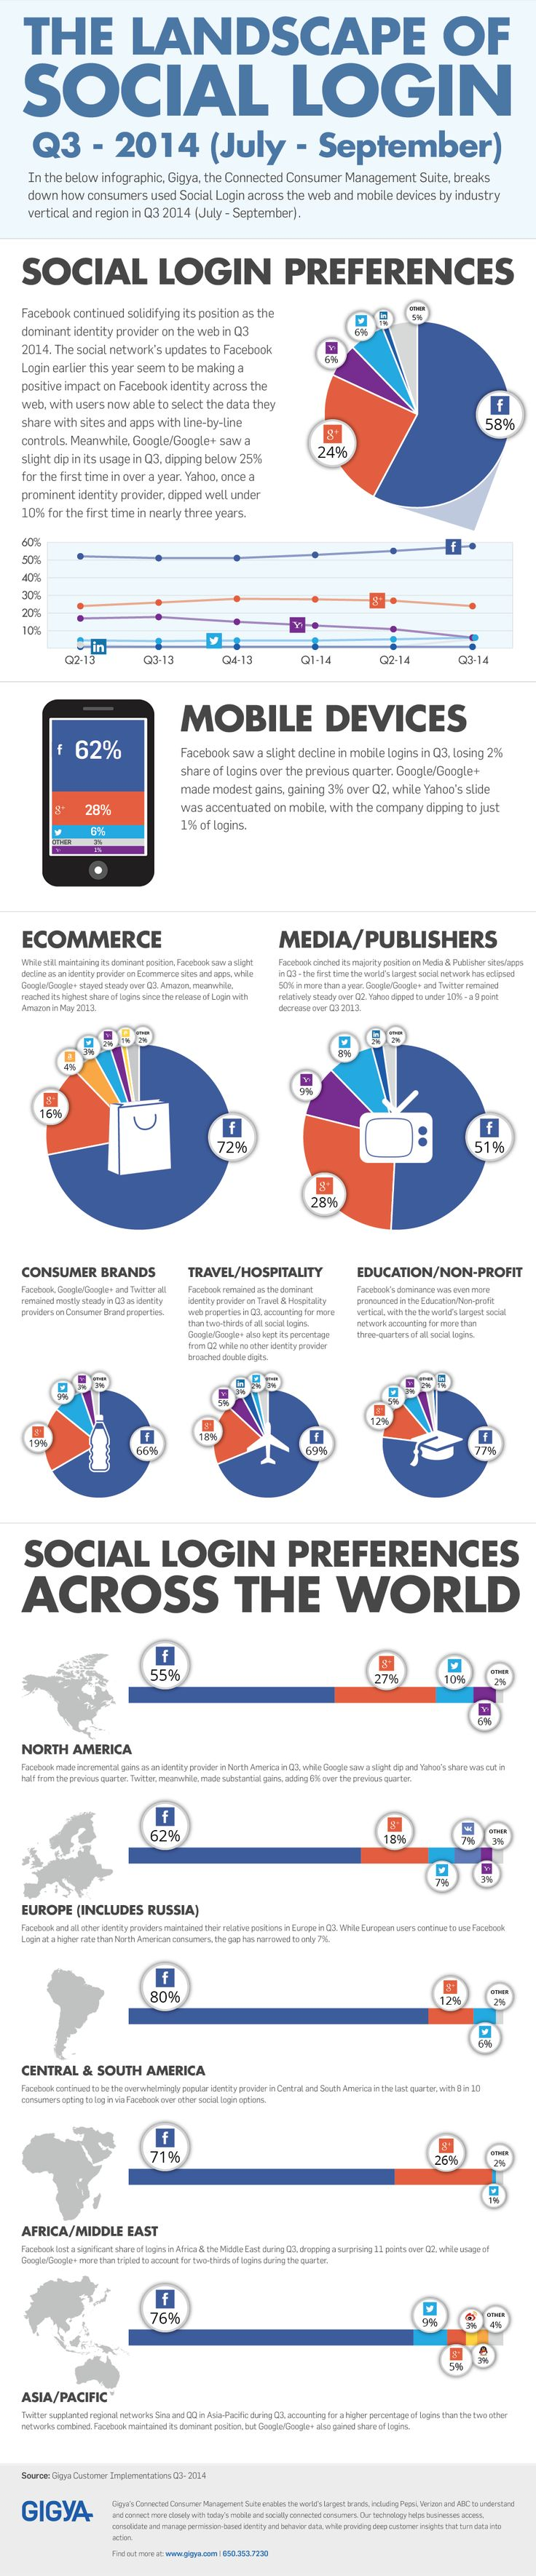 The Landscape of Social Login: Facebook Trends Up as Yahoo Tumbles - #infographic #socialmedia